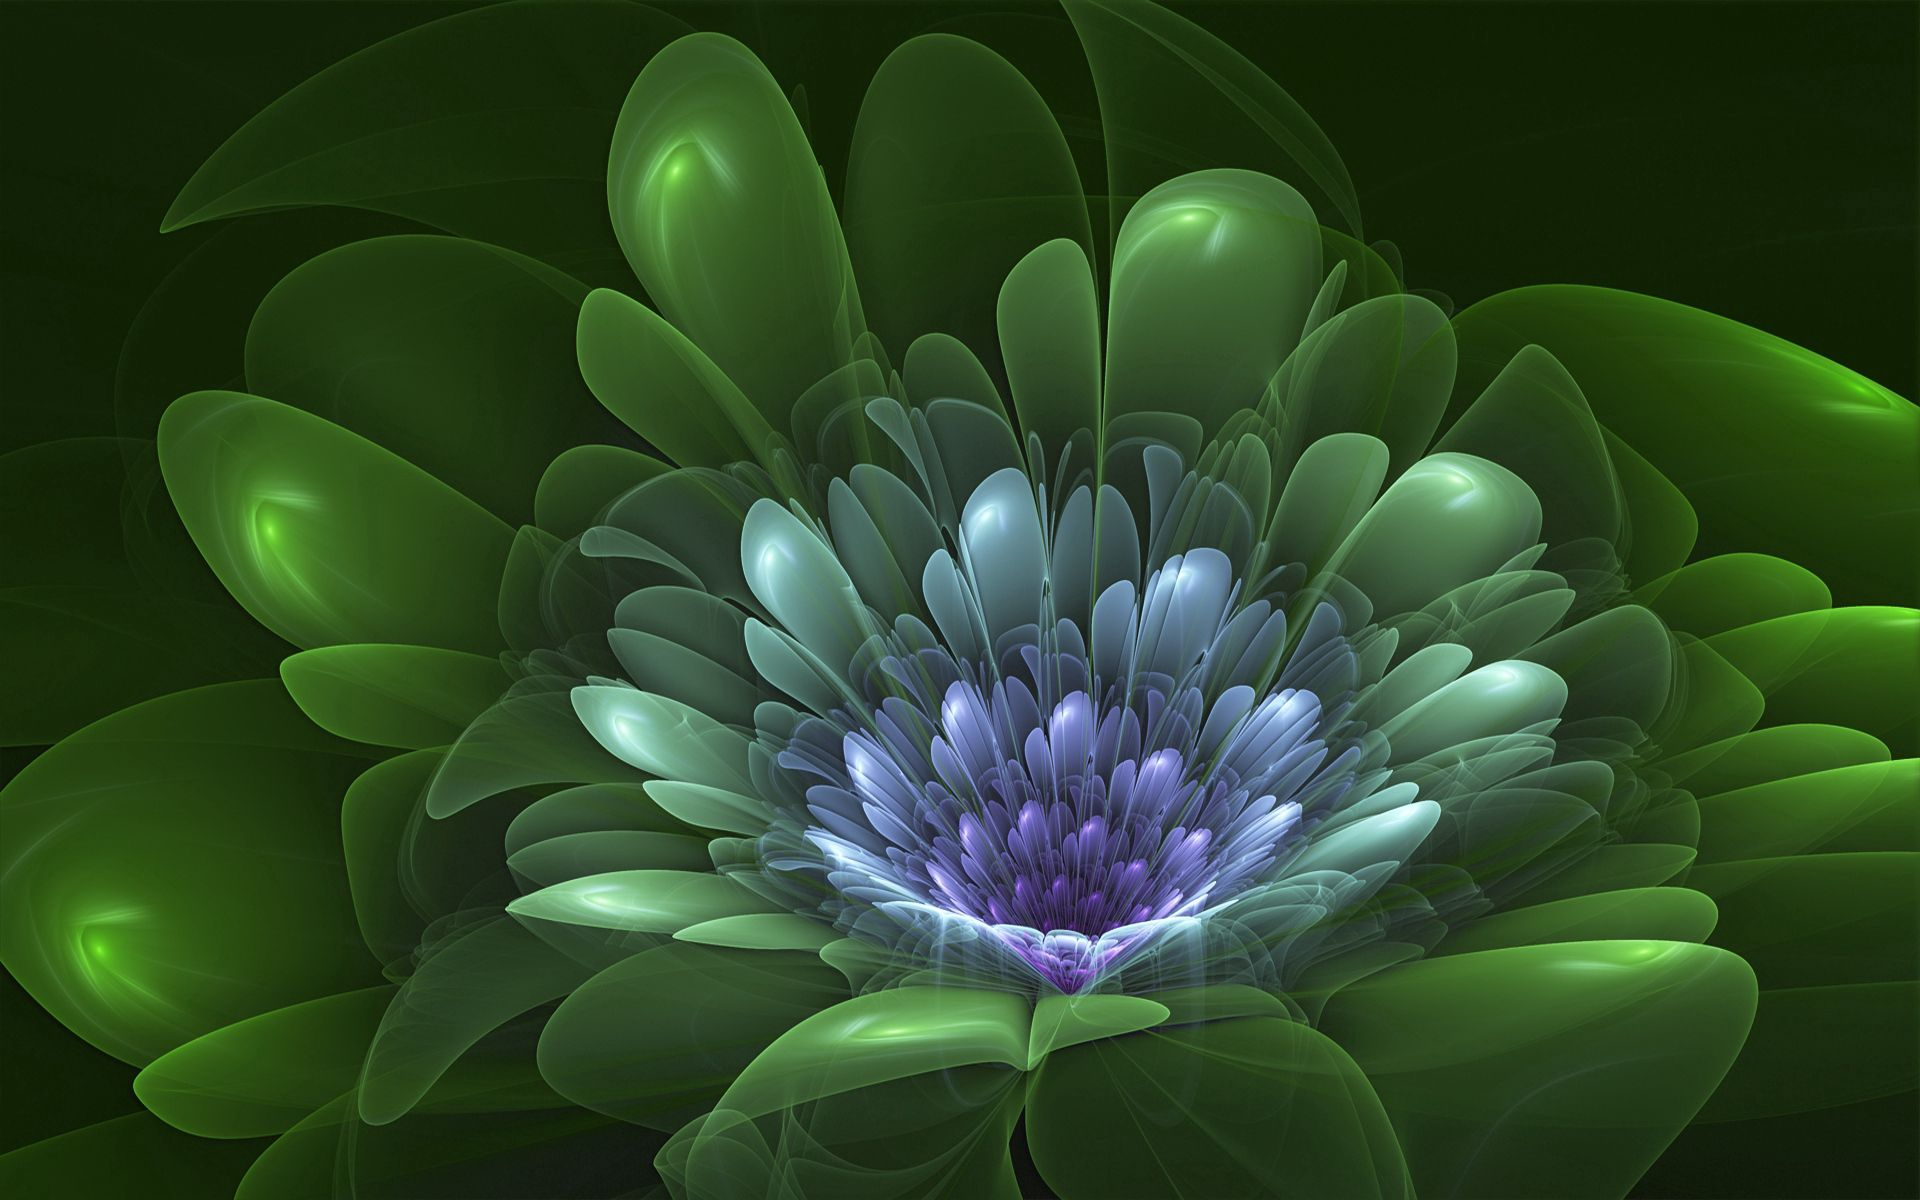 143498 download wallpaper Abstract, Flower, Petals, Shroud, Shine, Light screensavers and pictures for free